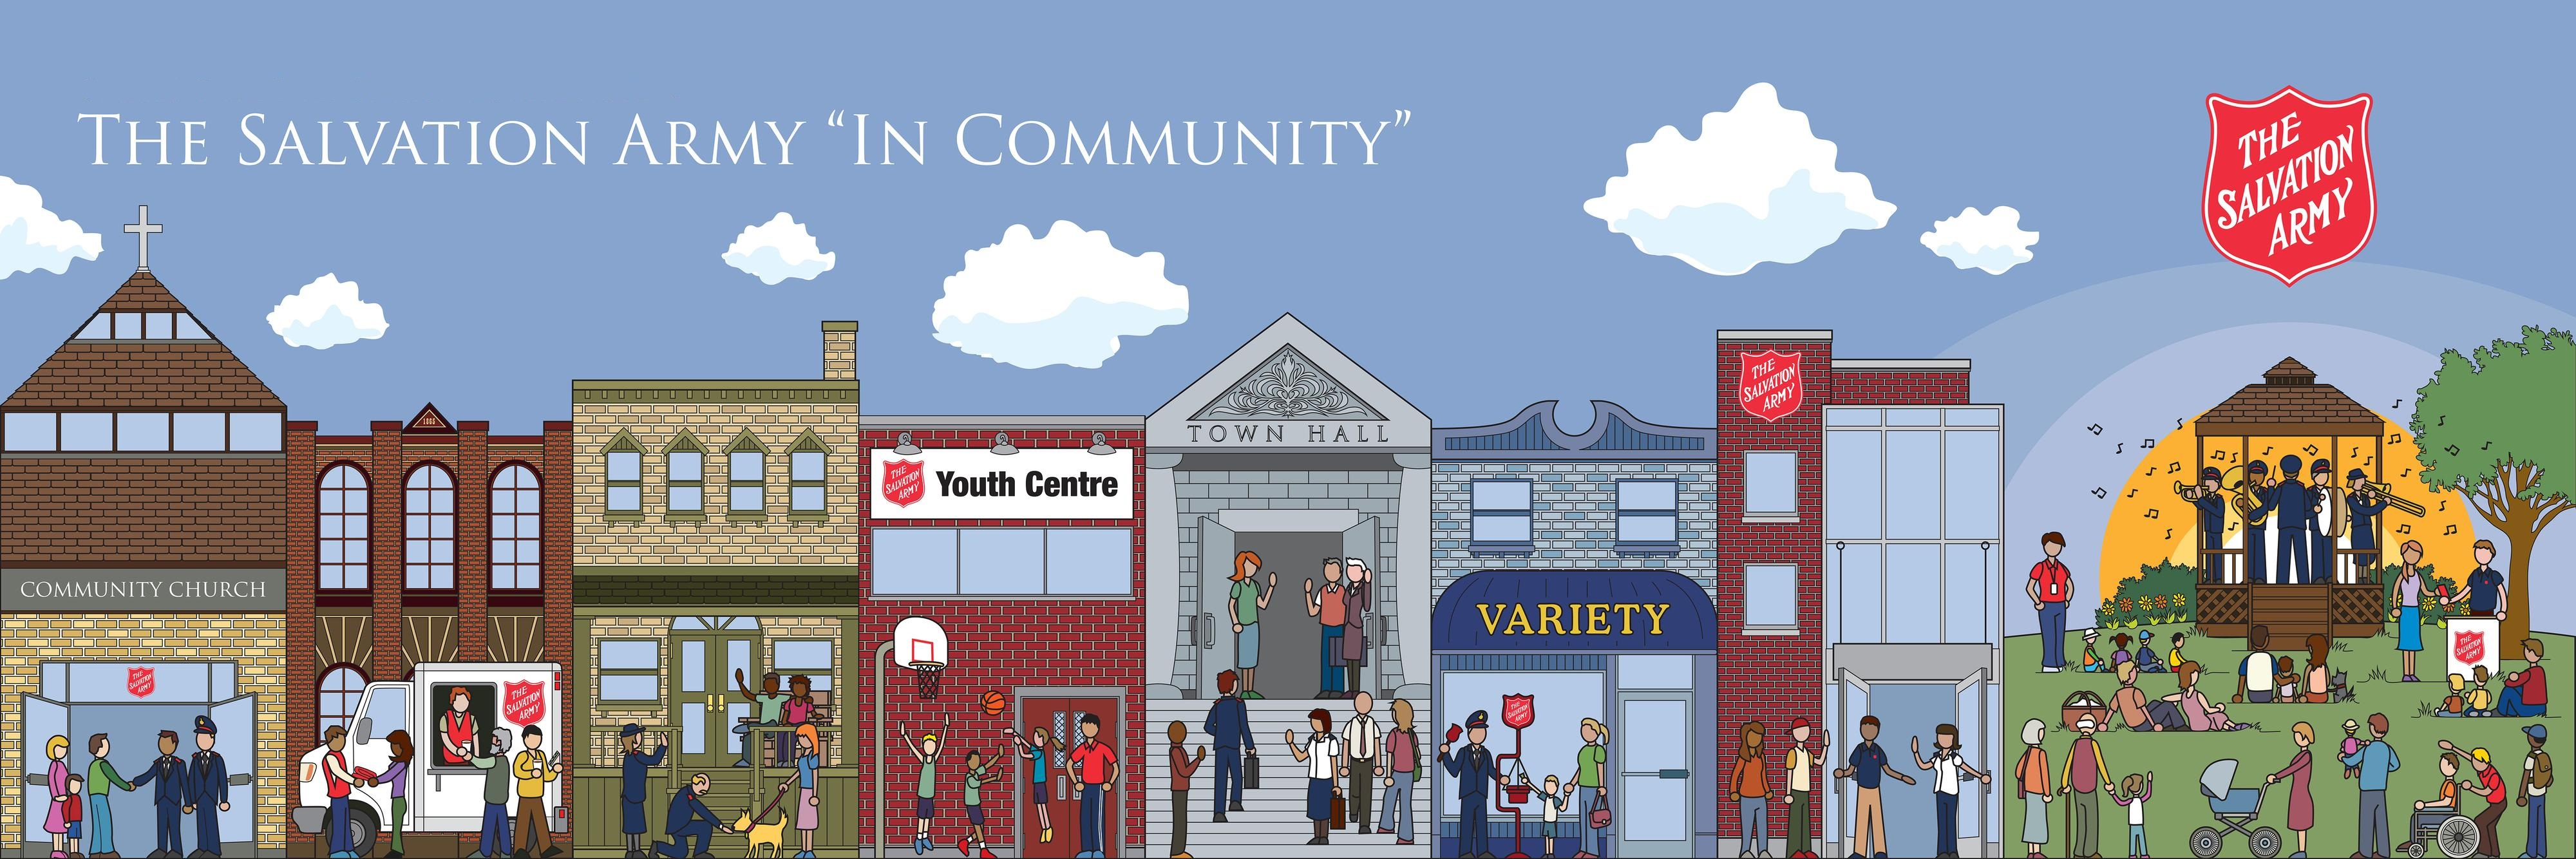 "Graphic of ""The Salvation Army in Community"" which displays an animated sequence of scenes of The Salvation Army working in the community - community church, outreach van, youth centre, thrift store, Christmas kettles, community picnic in the park."